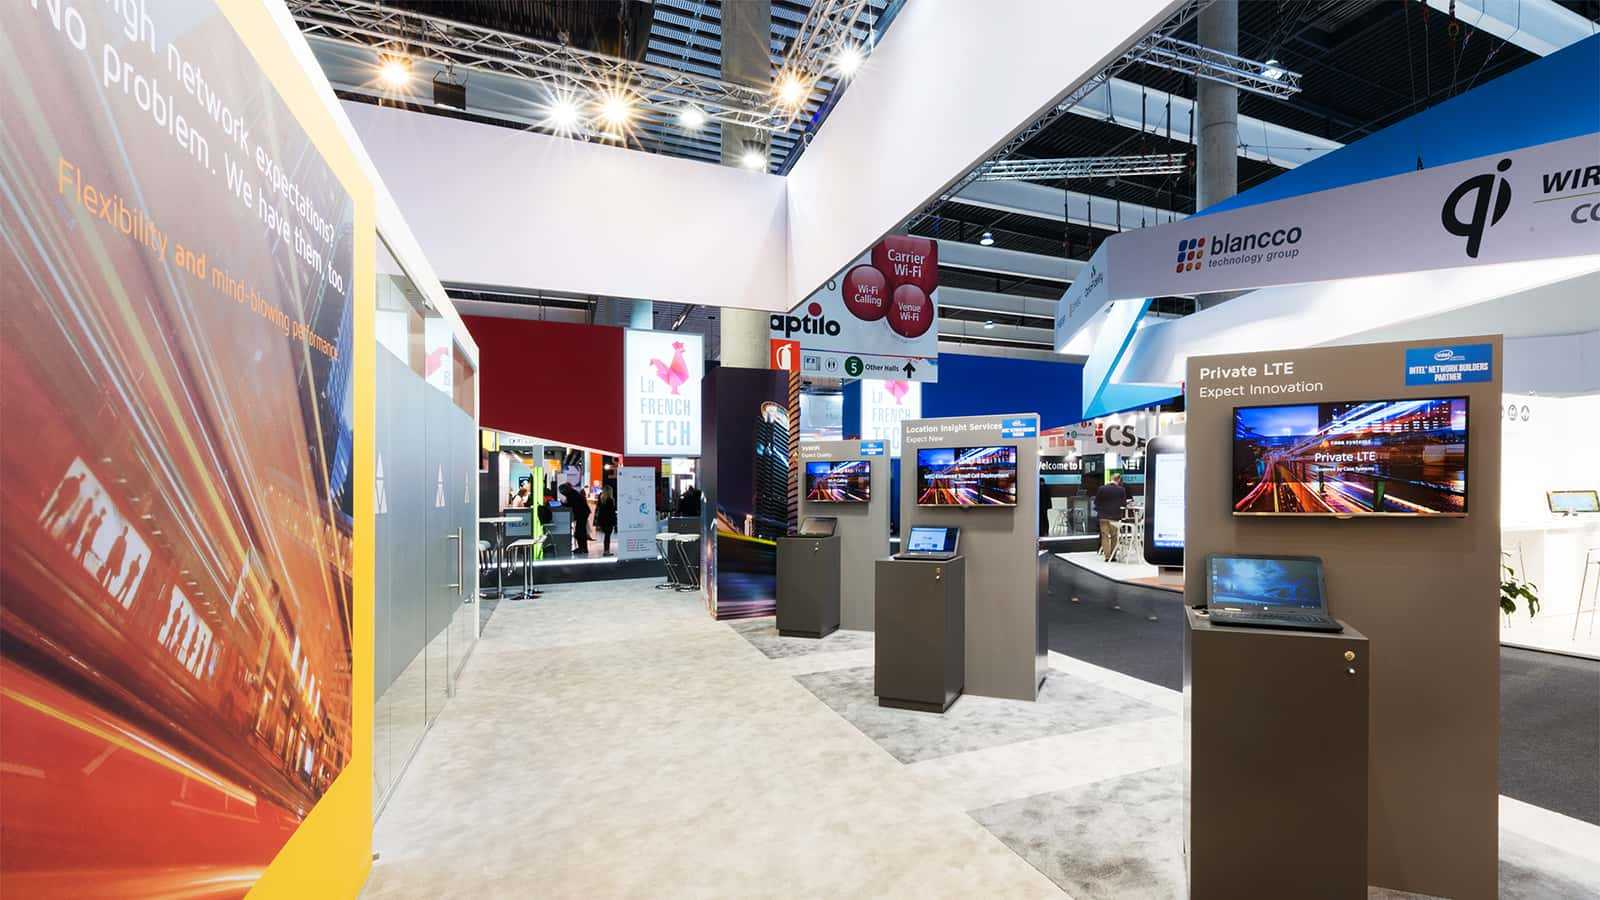 Center aisle at Casa Systems Mobile World Congress 2016 experience.